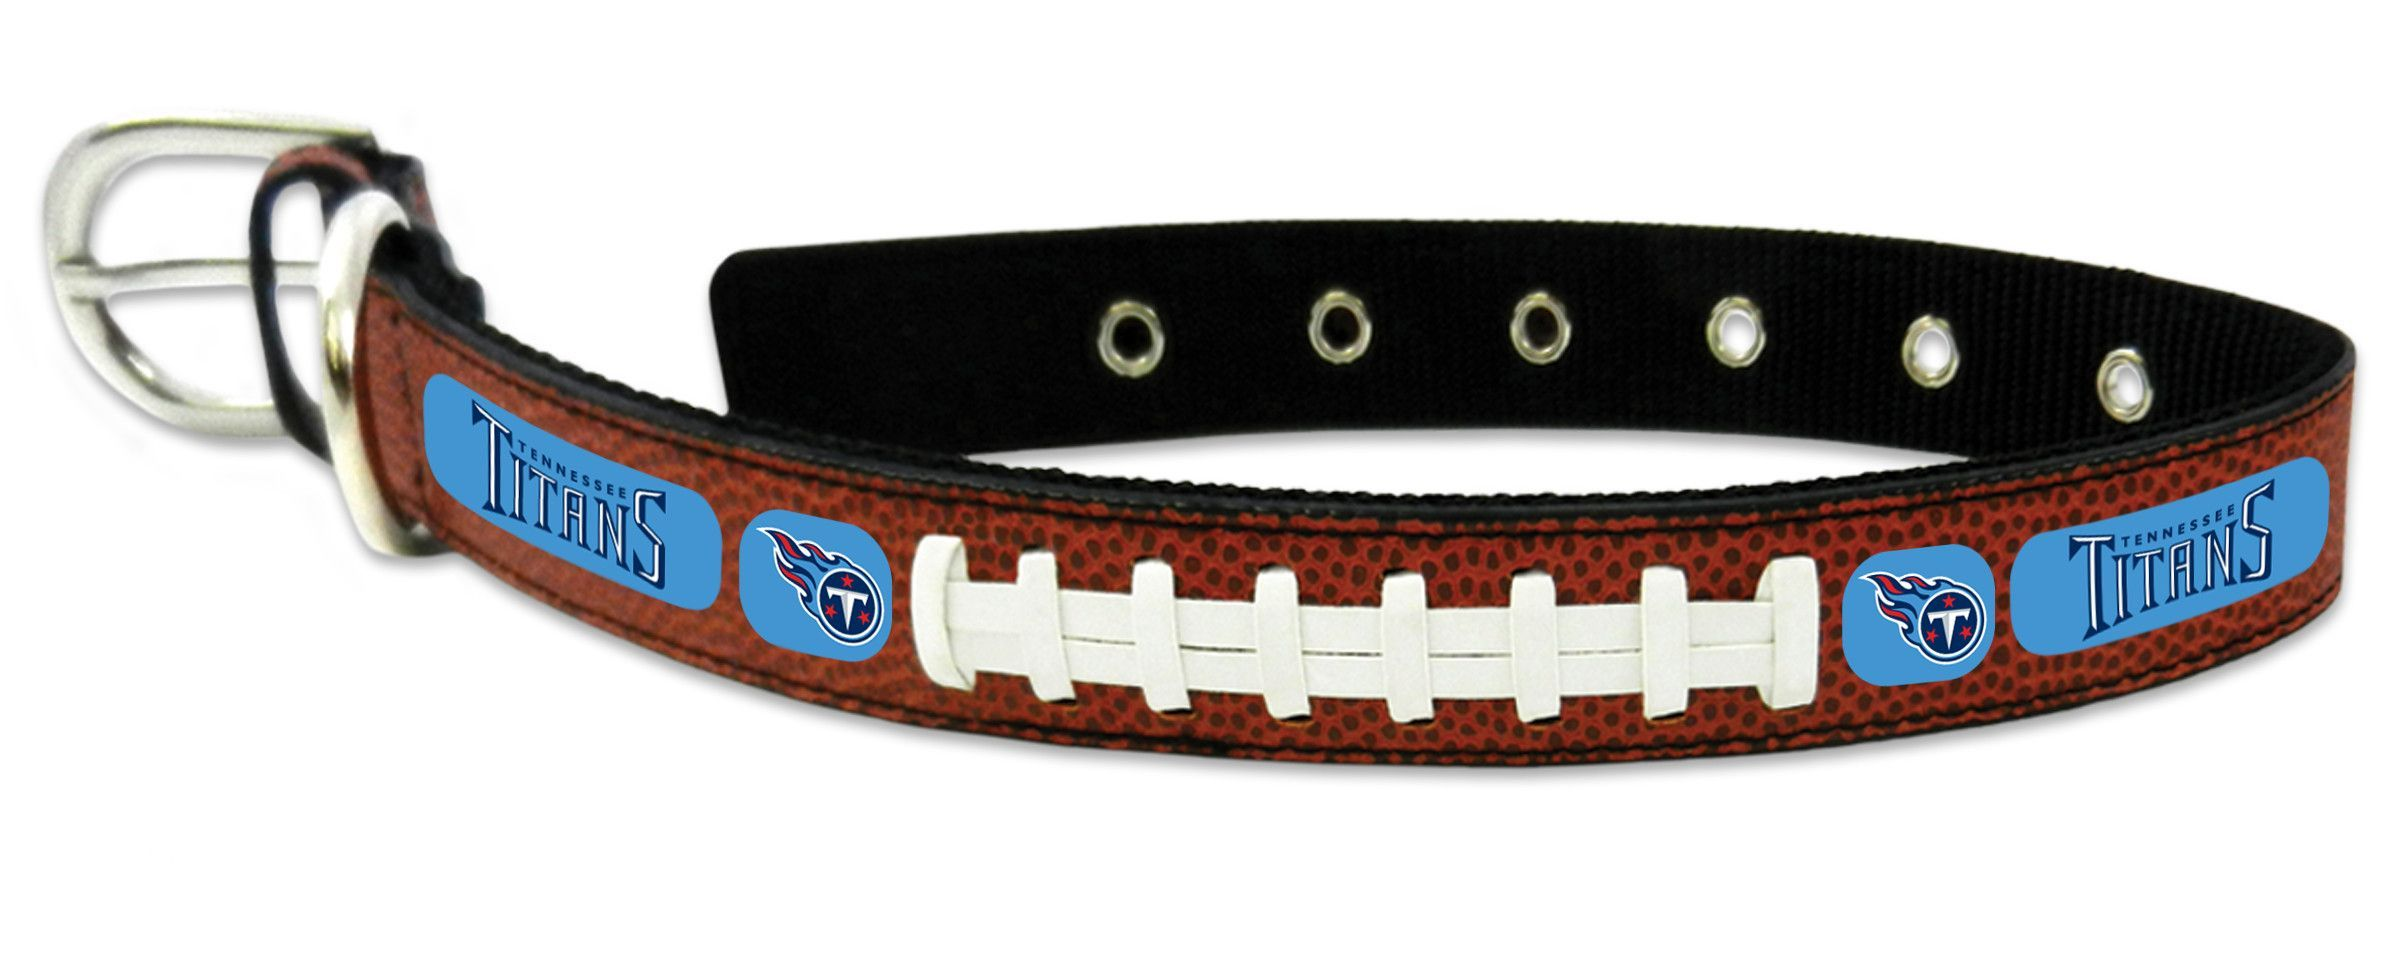 37f01e805 Tennessee Titans Dog Collar - Size Large